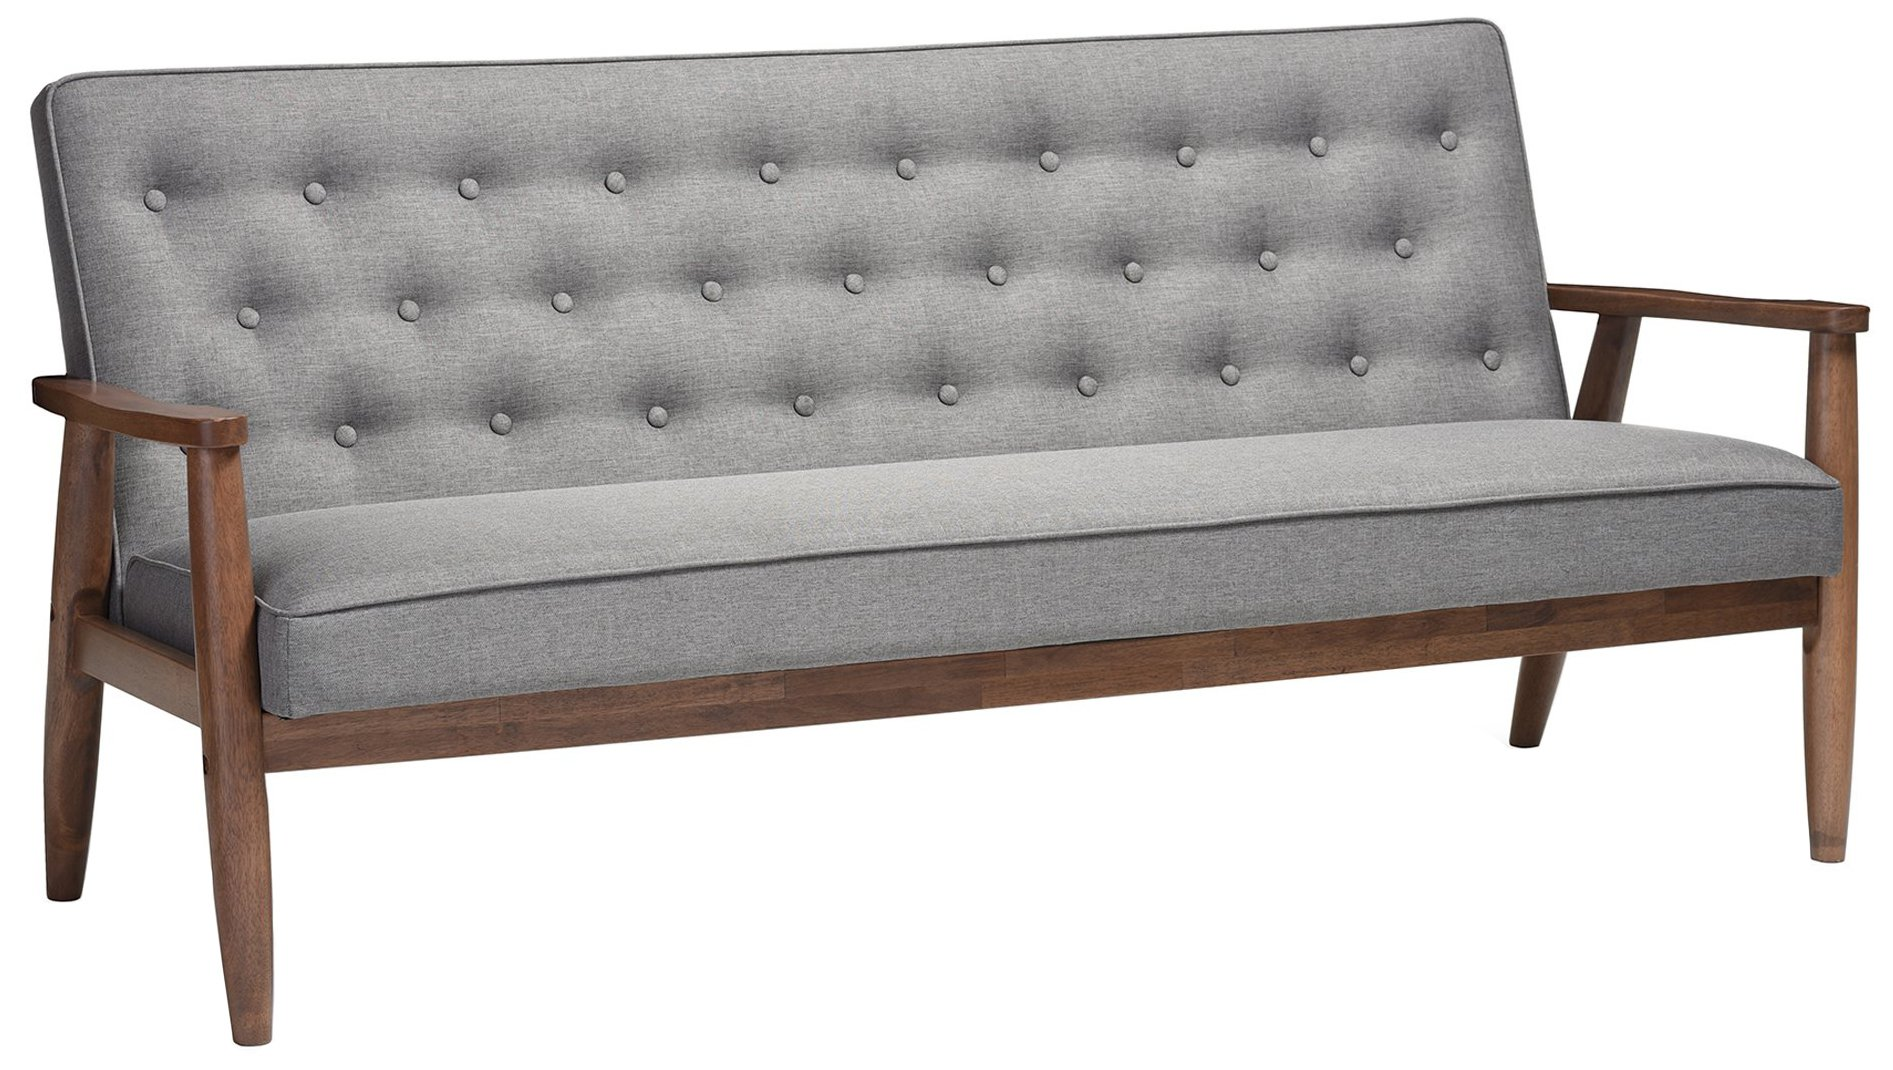 Baxton Studio Sorrento Mid-Century Retro Modern Fabric Upholstered Wooden 3-Seater Sofa, Grey by Baxton Studio